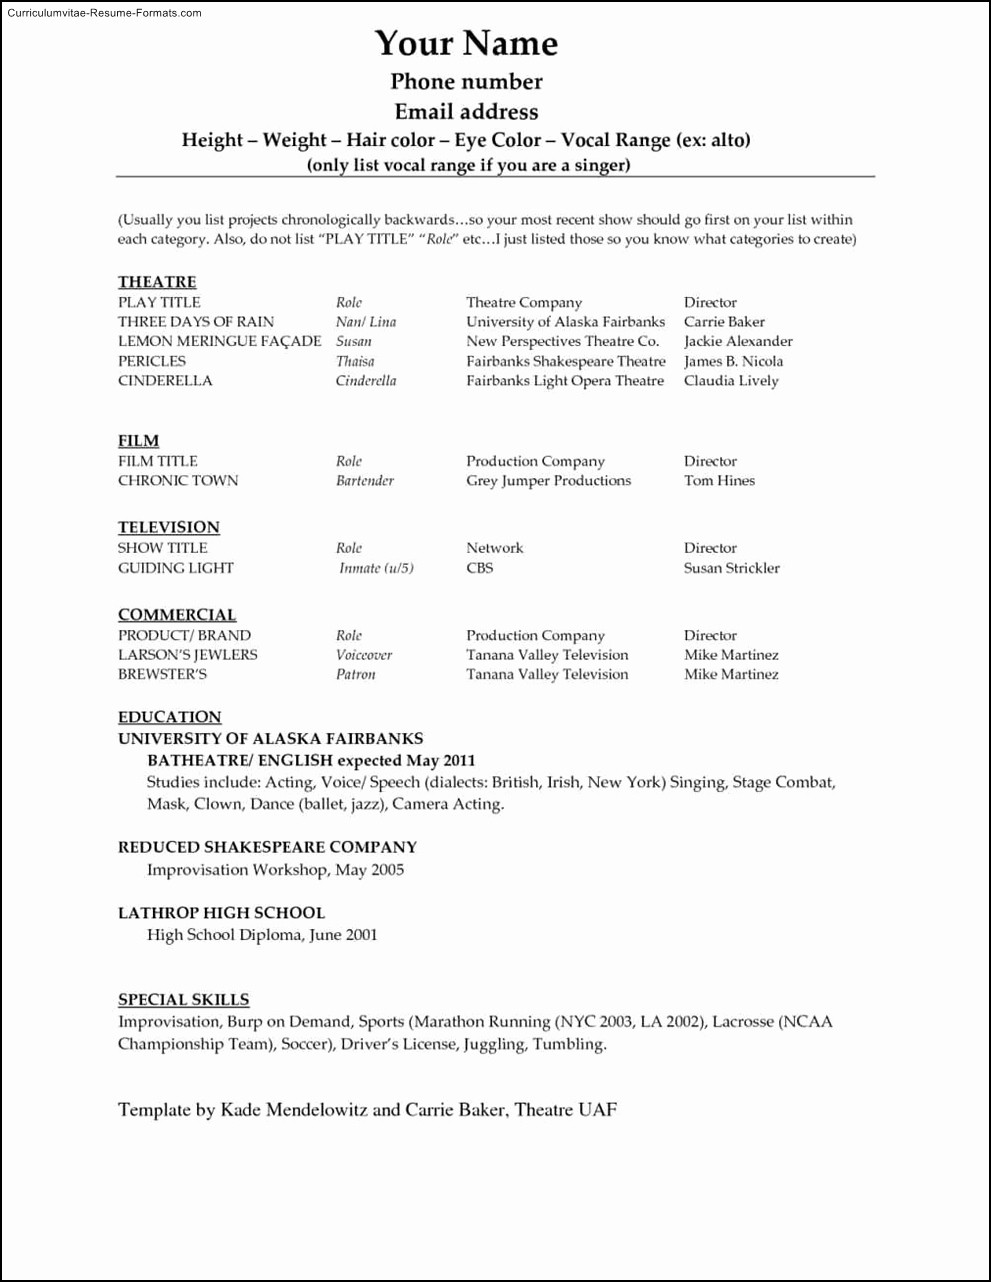 Resume Templates Free Microsoft Word New Microsoft Word 2010 Resume Template Free Samples